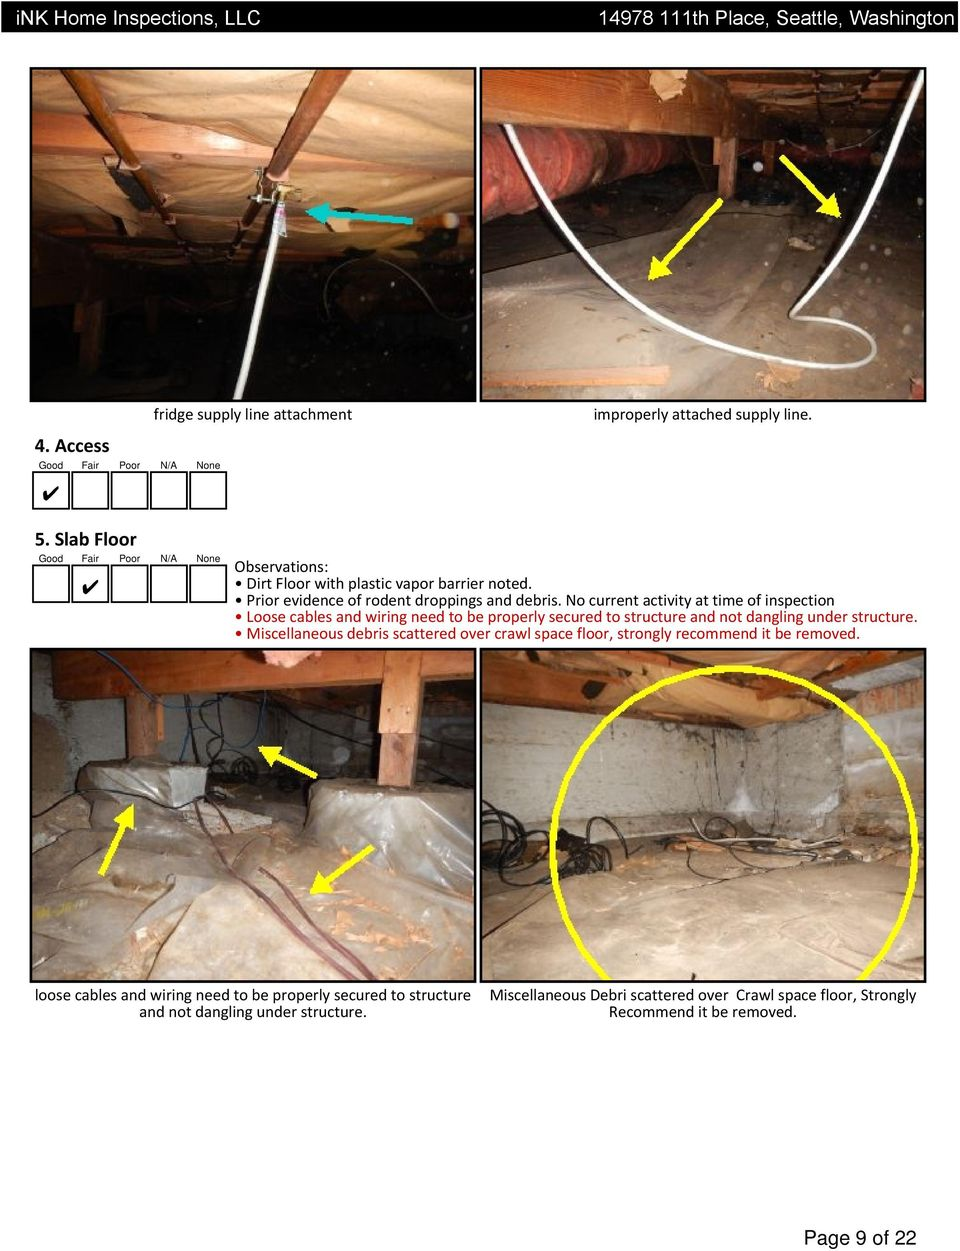 No current activity at time of inspection Loose cables and wiring need to be properly secured to structure and not dangling under structure.